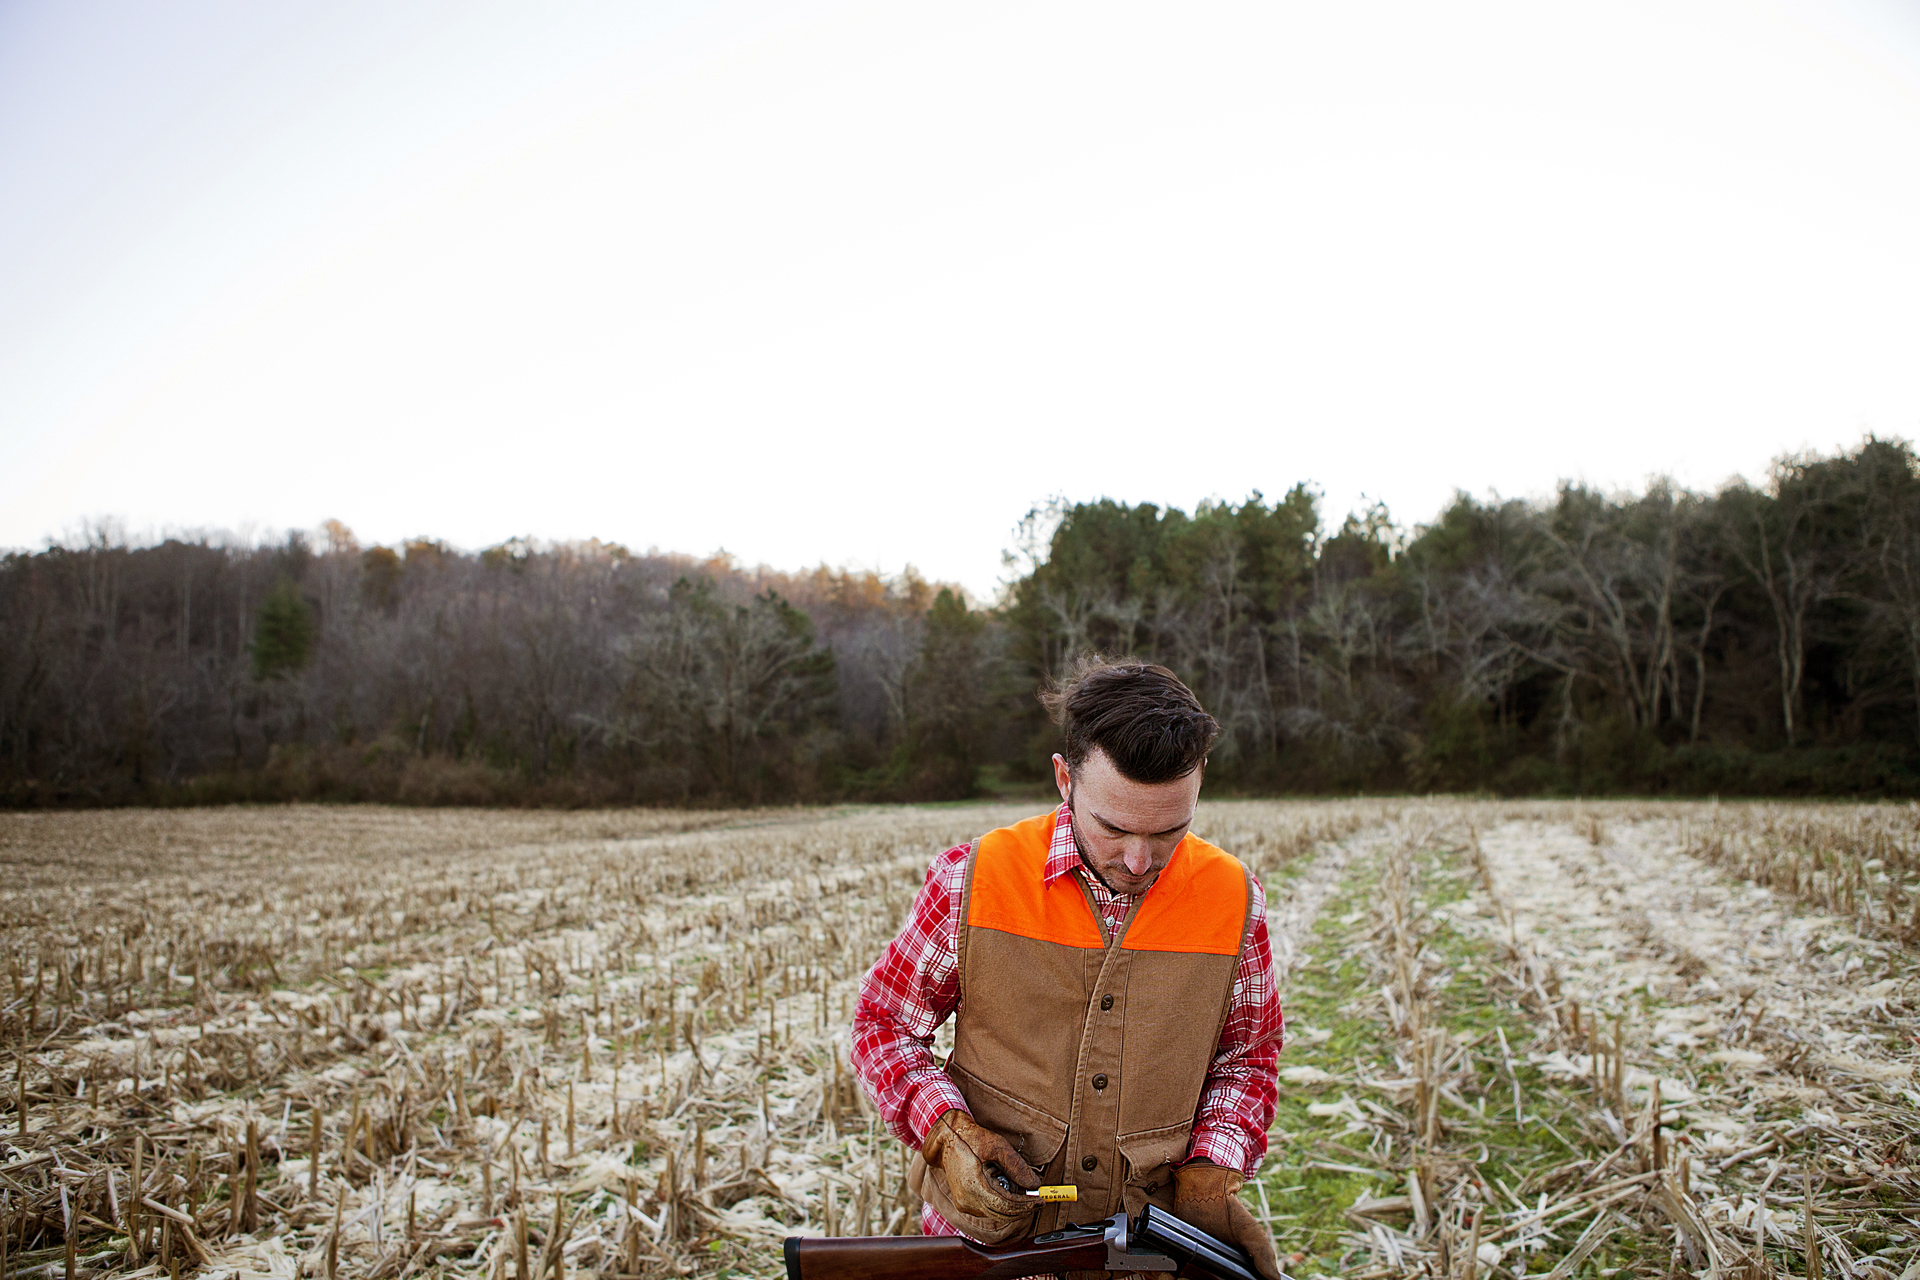 ADV007_Hunting_Mark_cornfield2.jpg